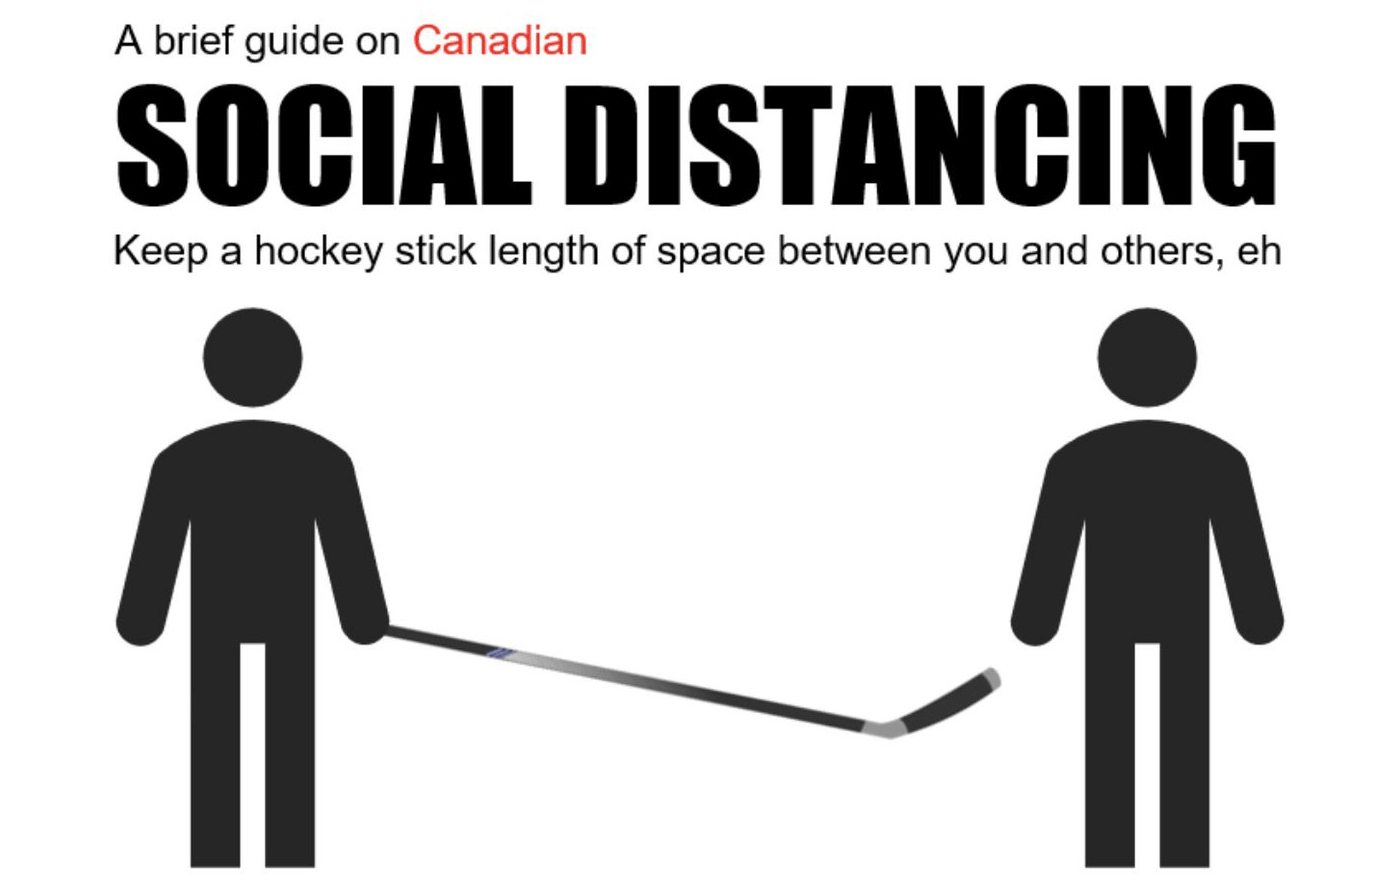 canadian social distancing poster